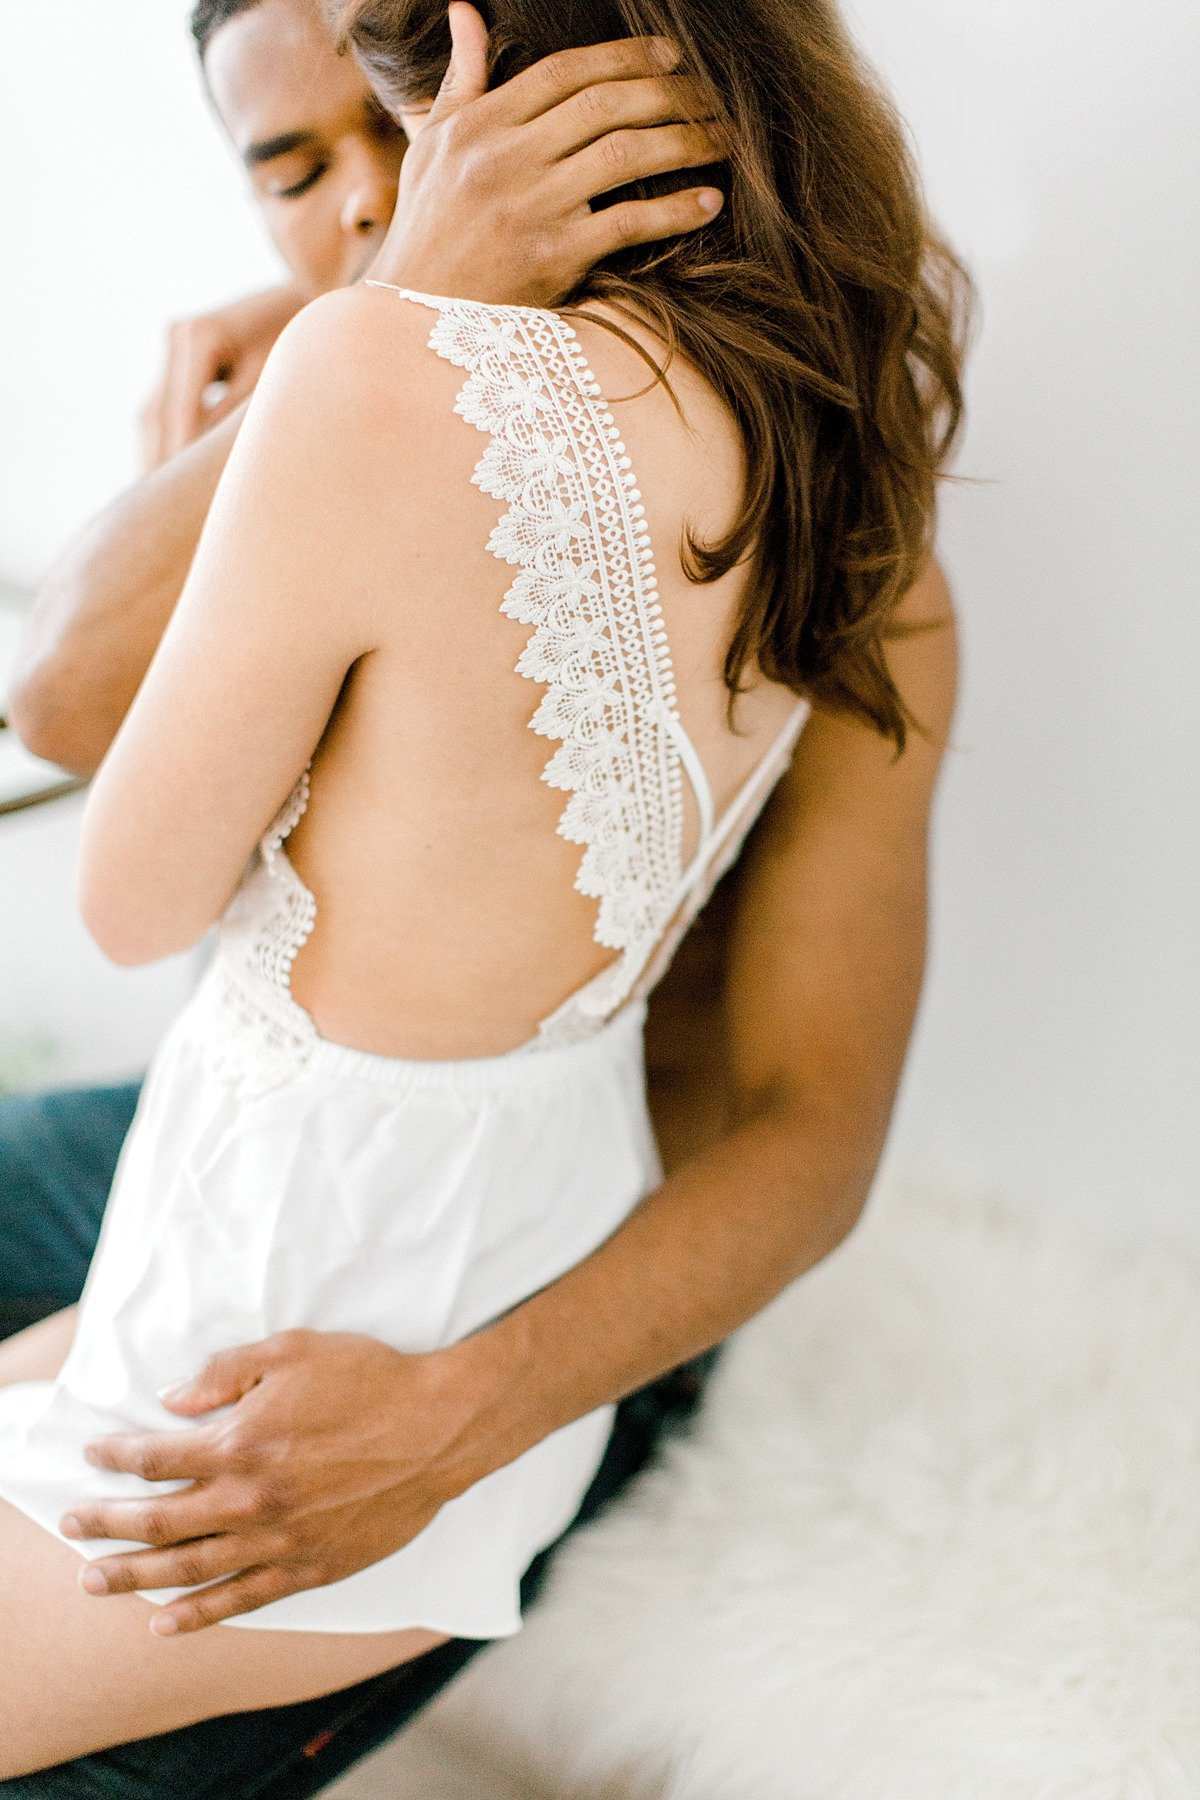 Sensual Multiracial Couples Boudoir Photo Shoot BHLDN Lingerie VA Photographer Yours Truly Portraiture-37